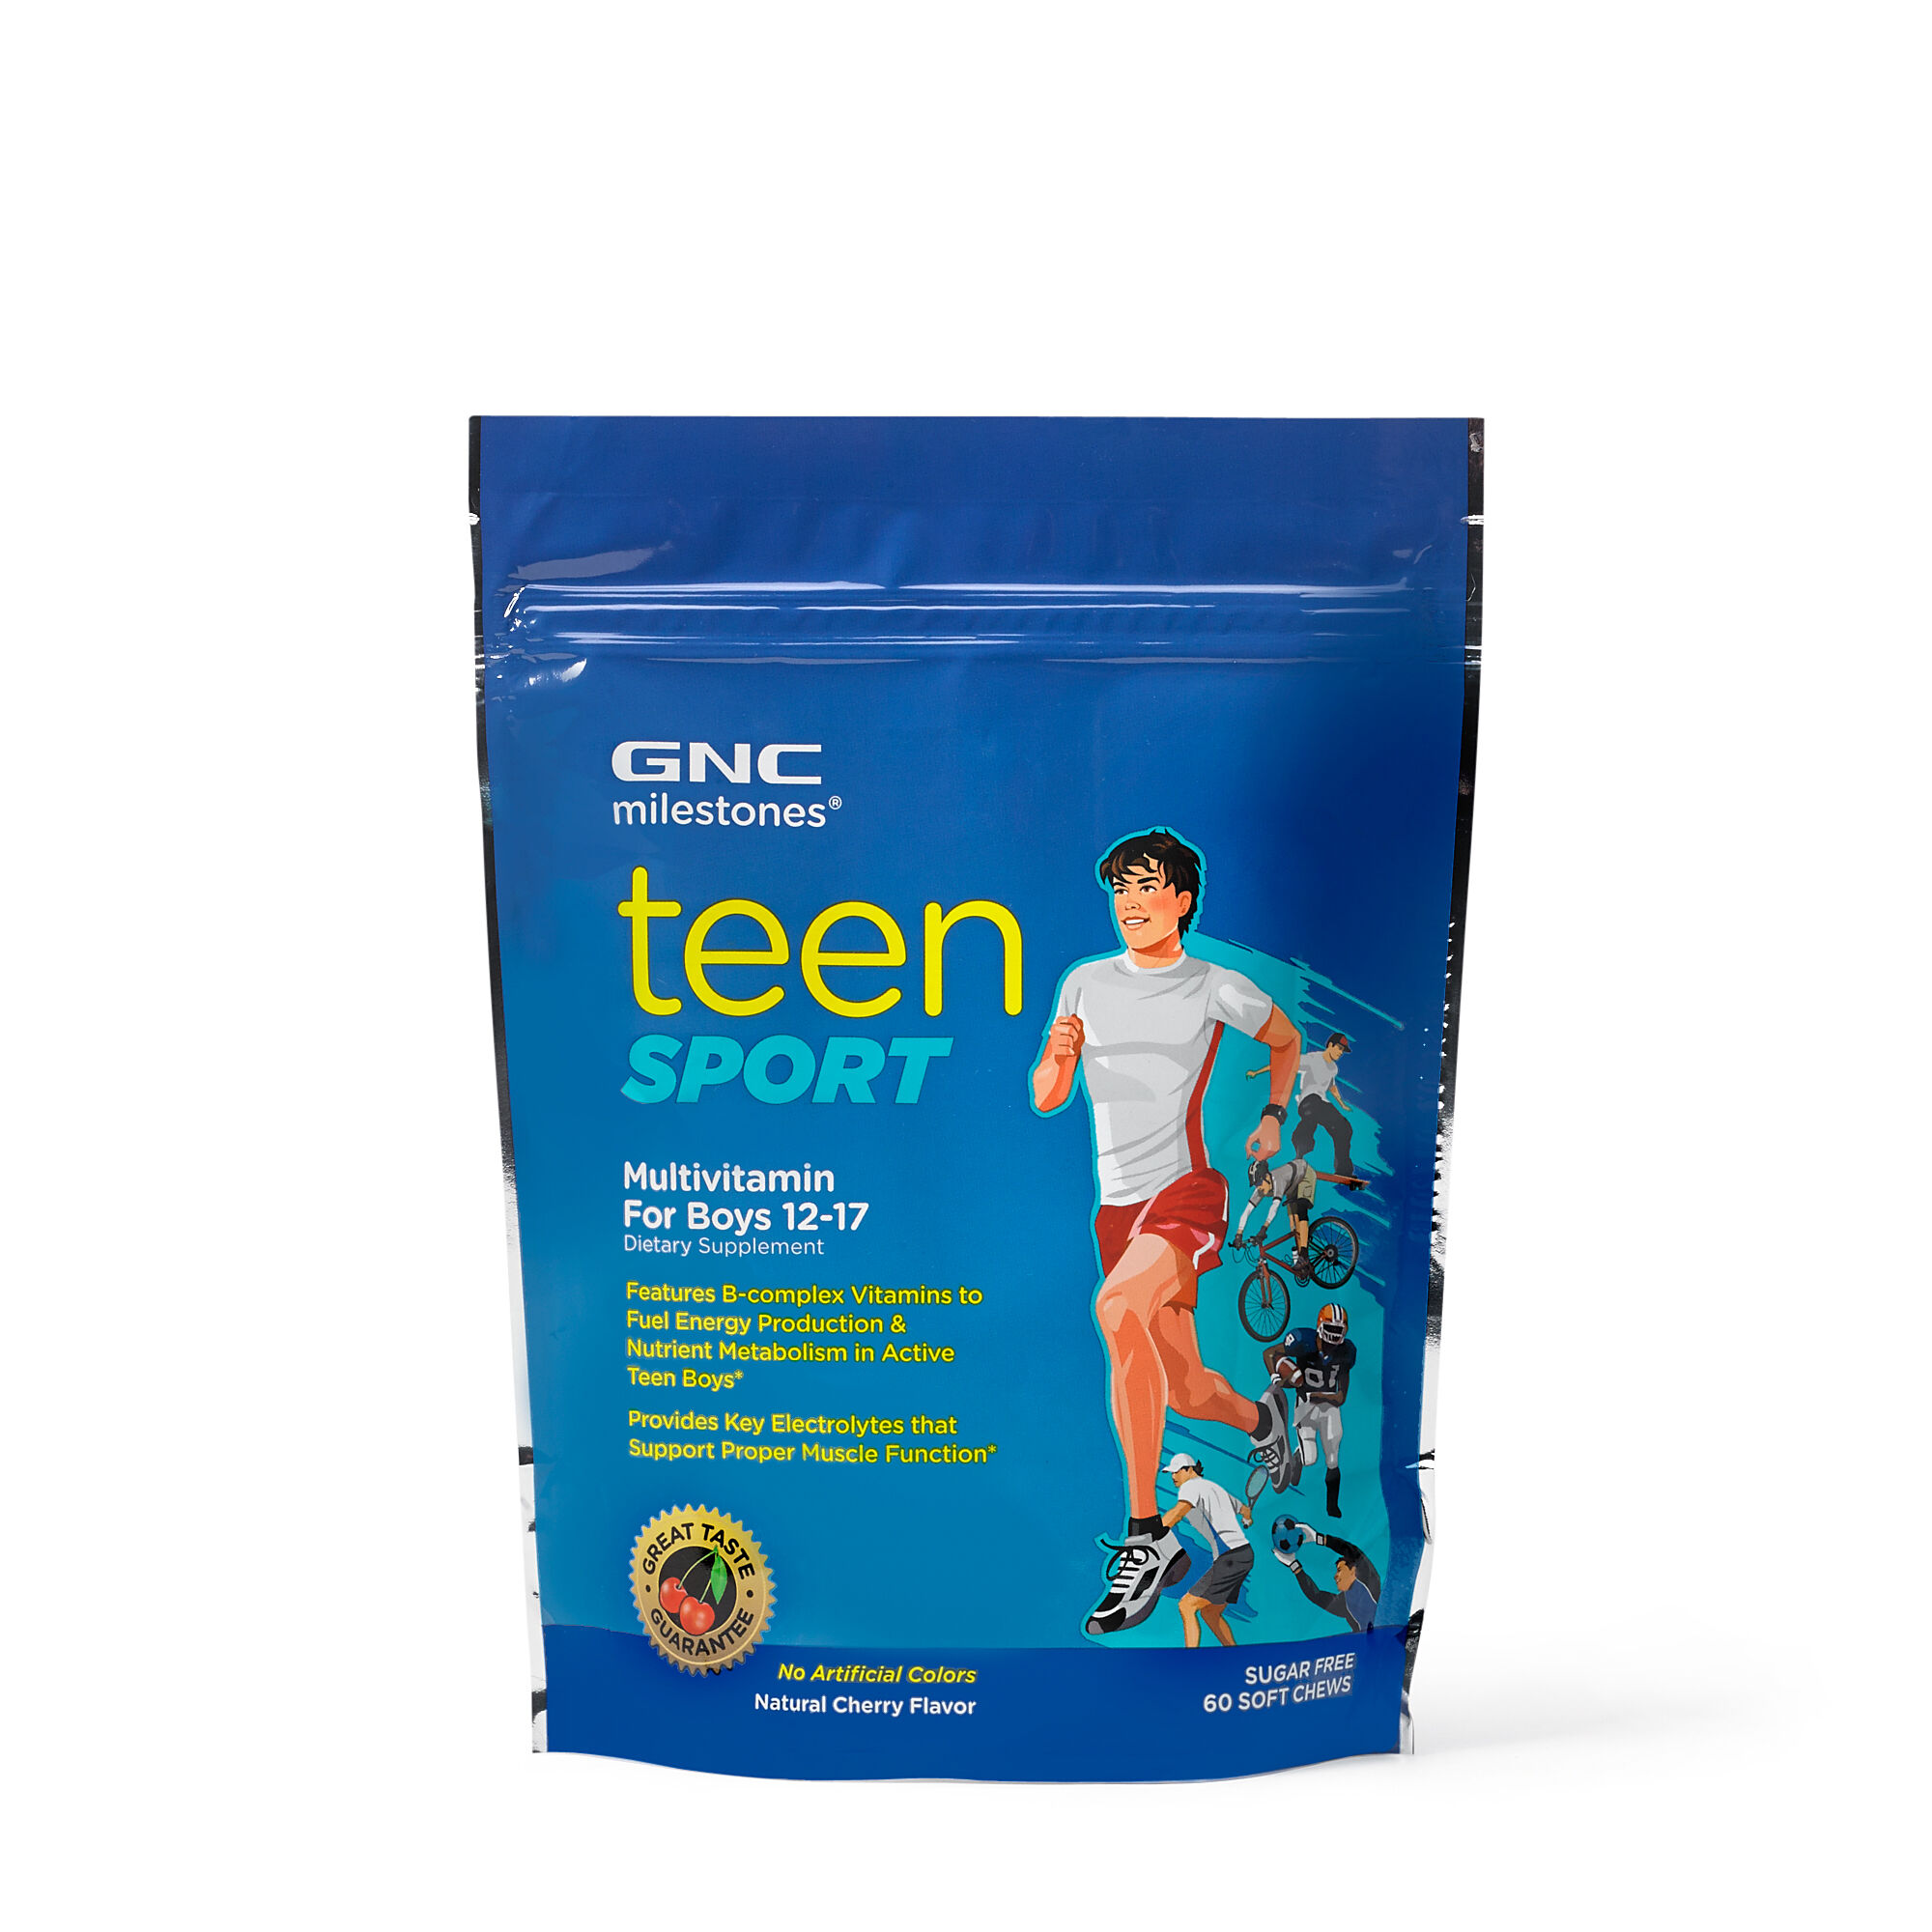 GNC milestones™ Teen Sport Multivitamin For Boys 12-17 - Cherry